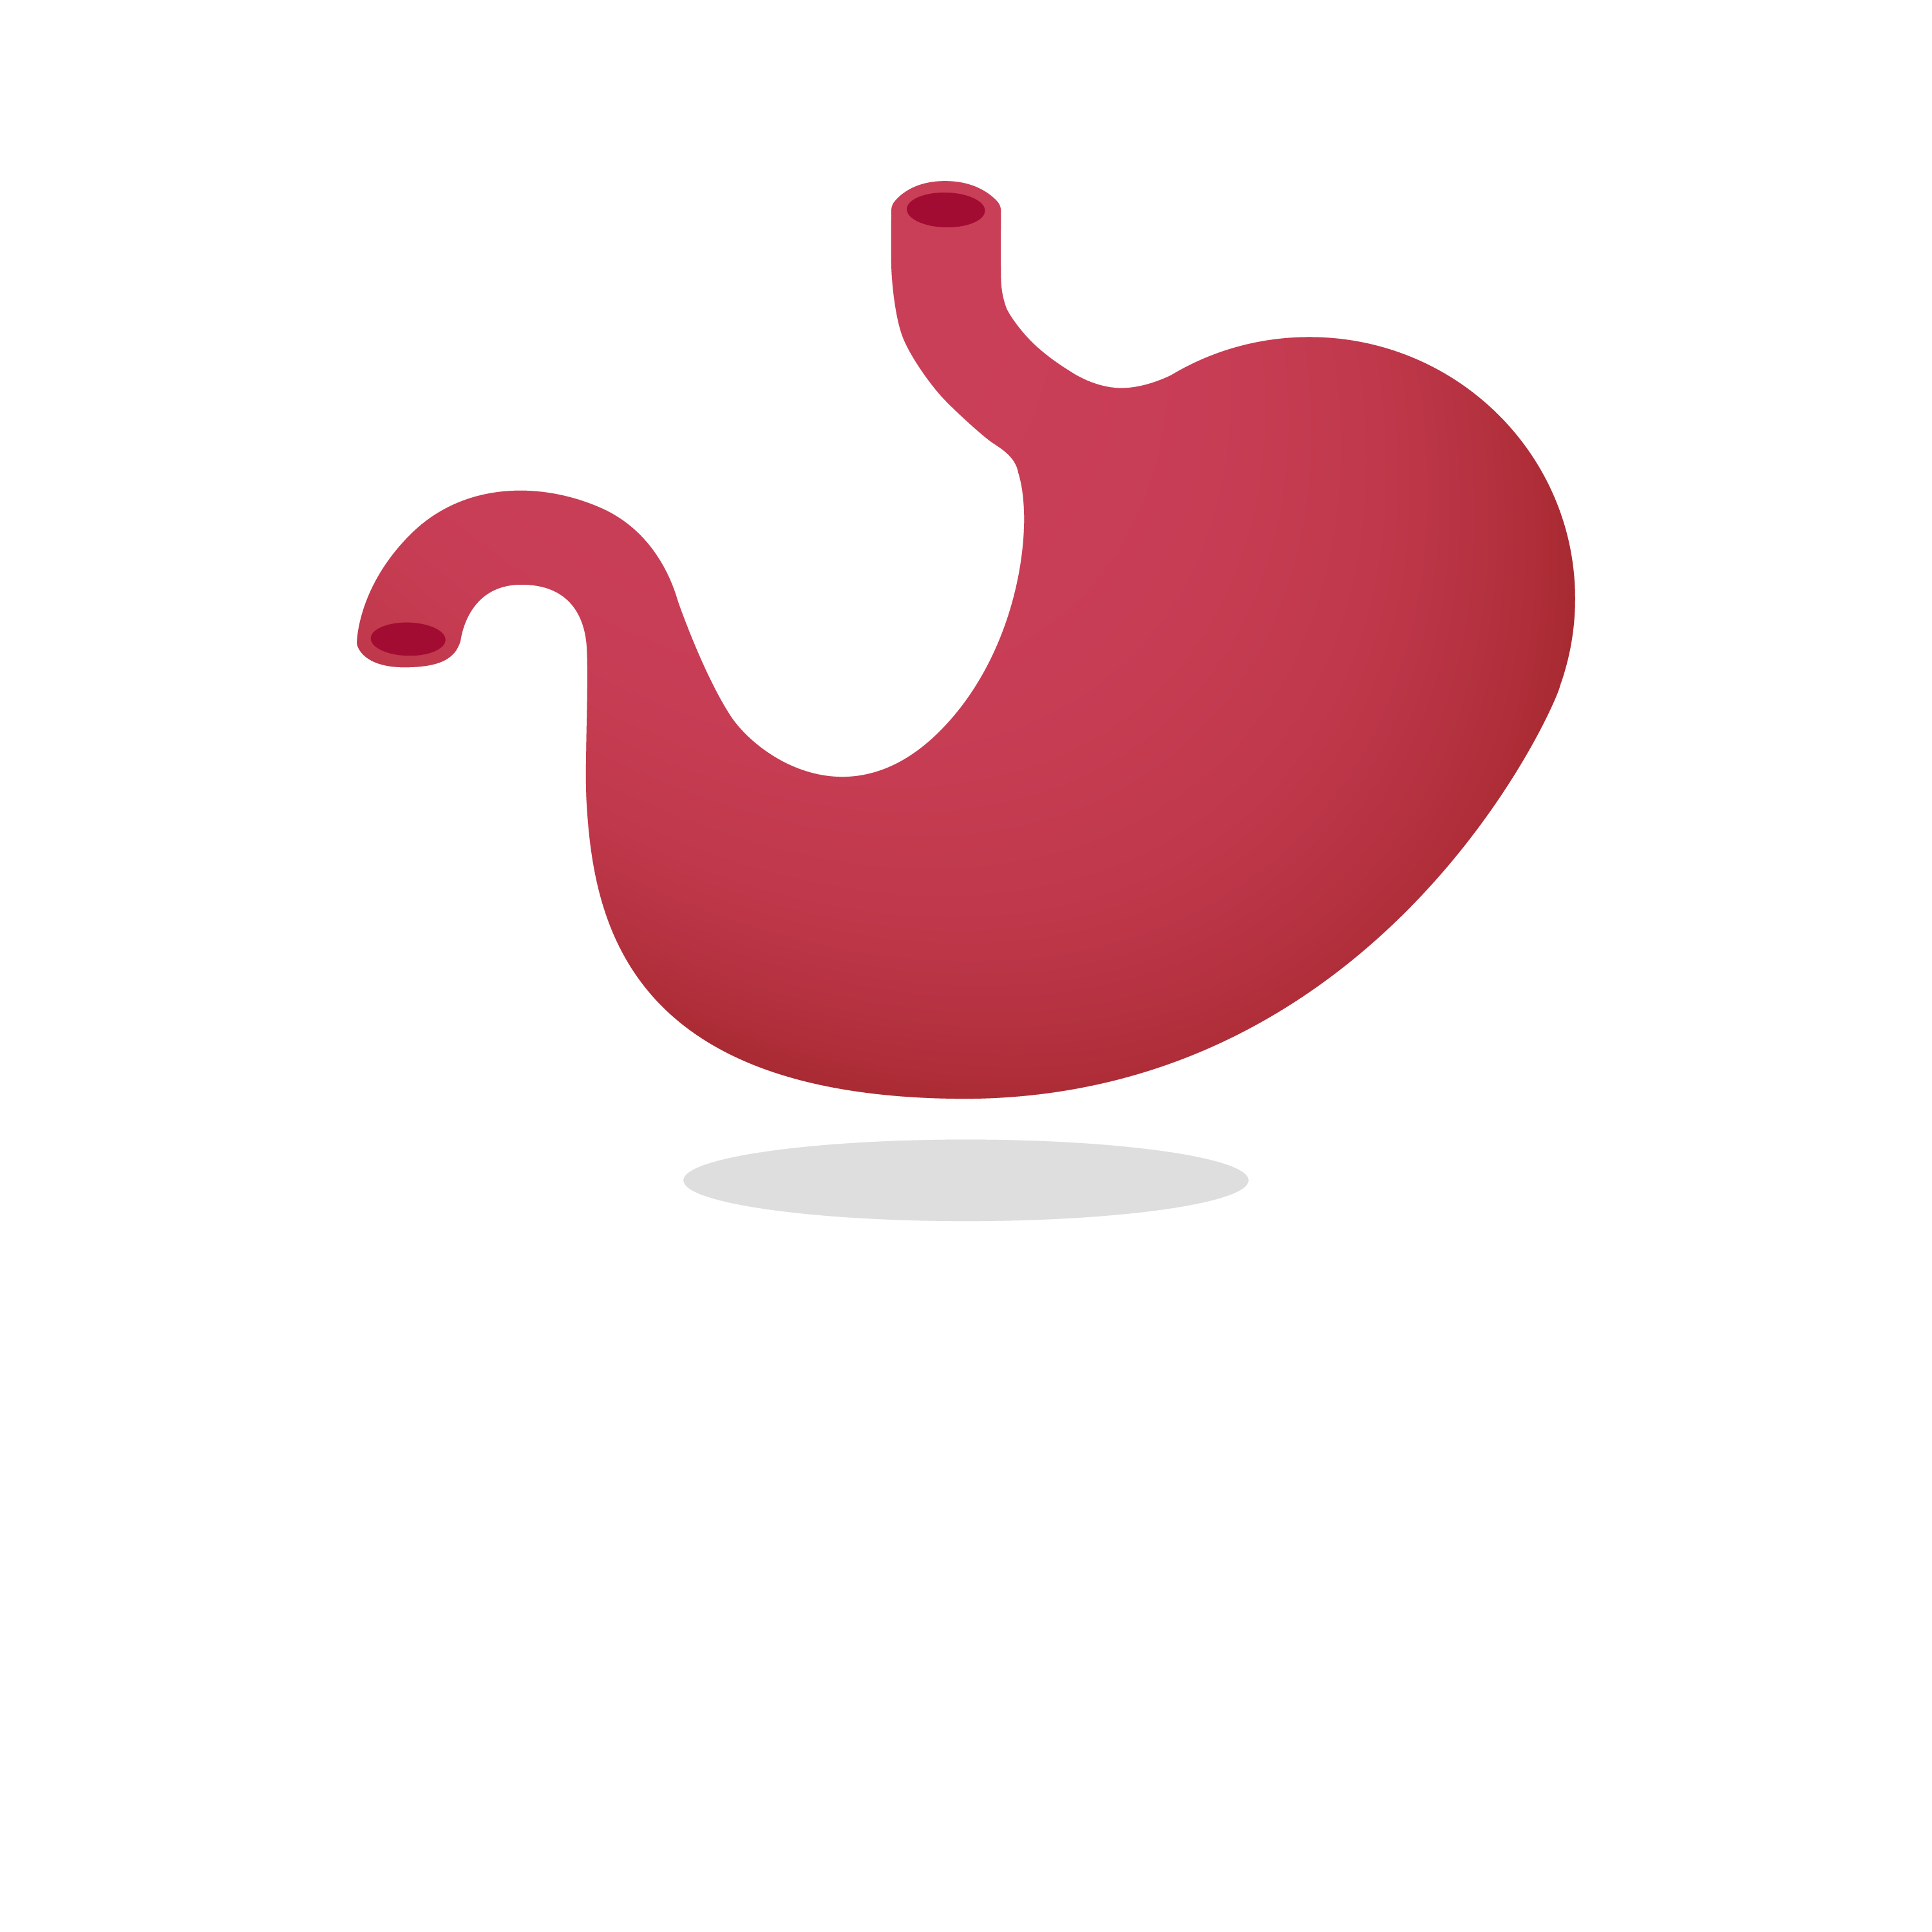 The Abergavenny Dietitian